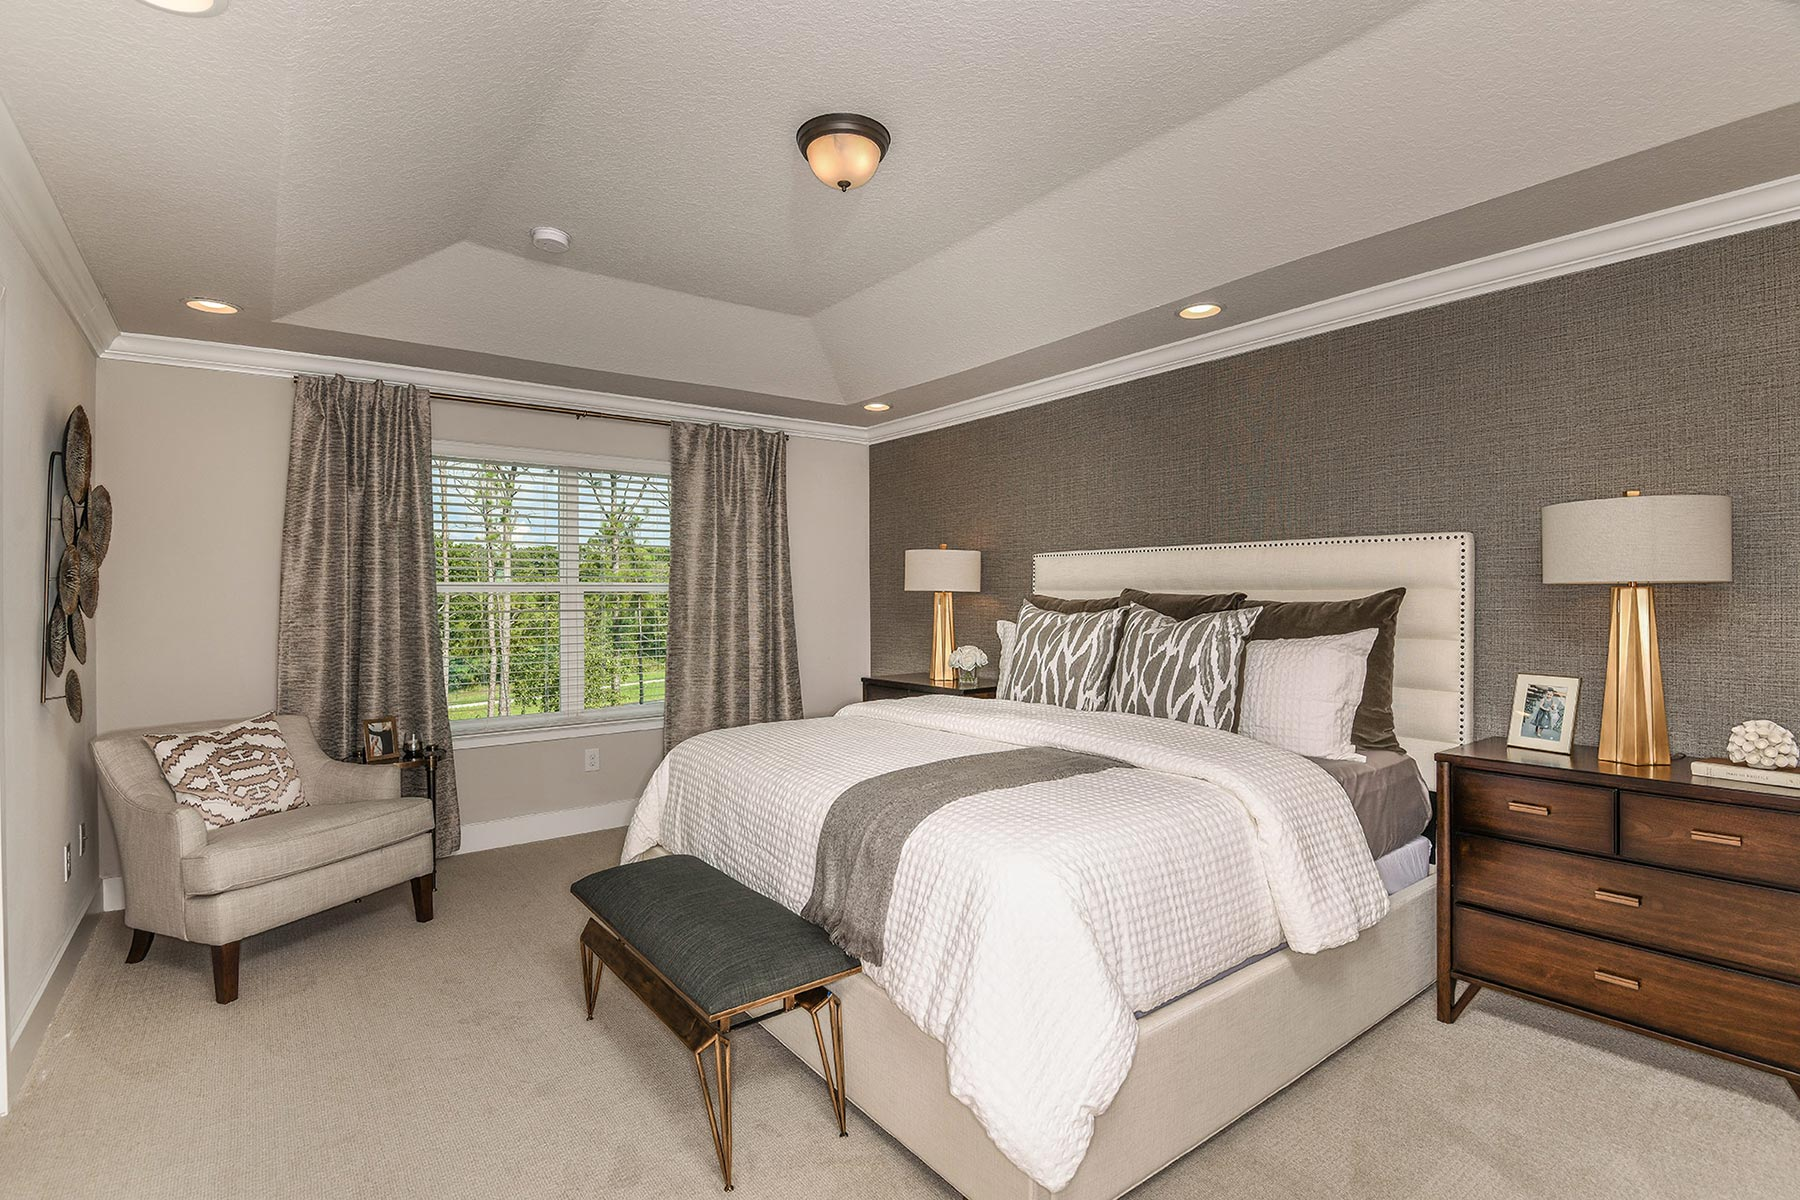 Boyette Park Bedroom in Riverview Florida by Mattamy Homes